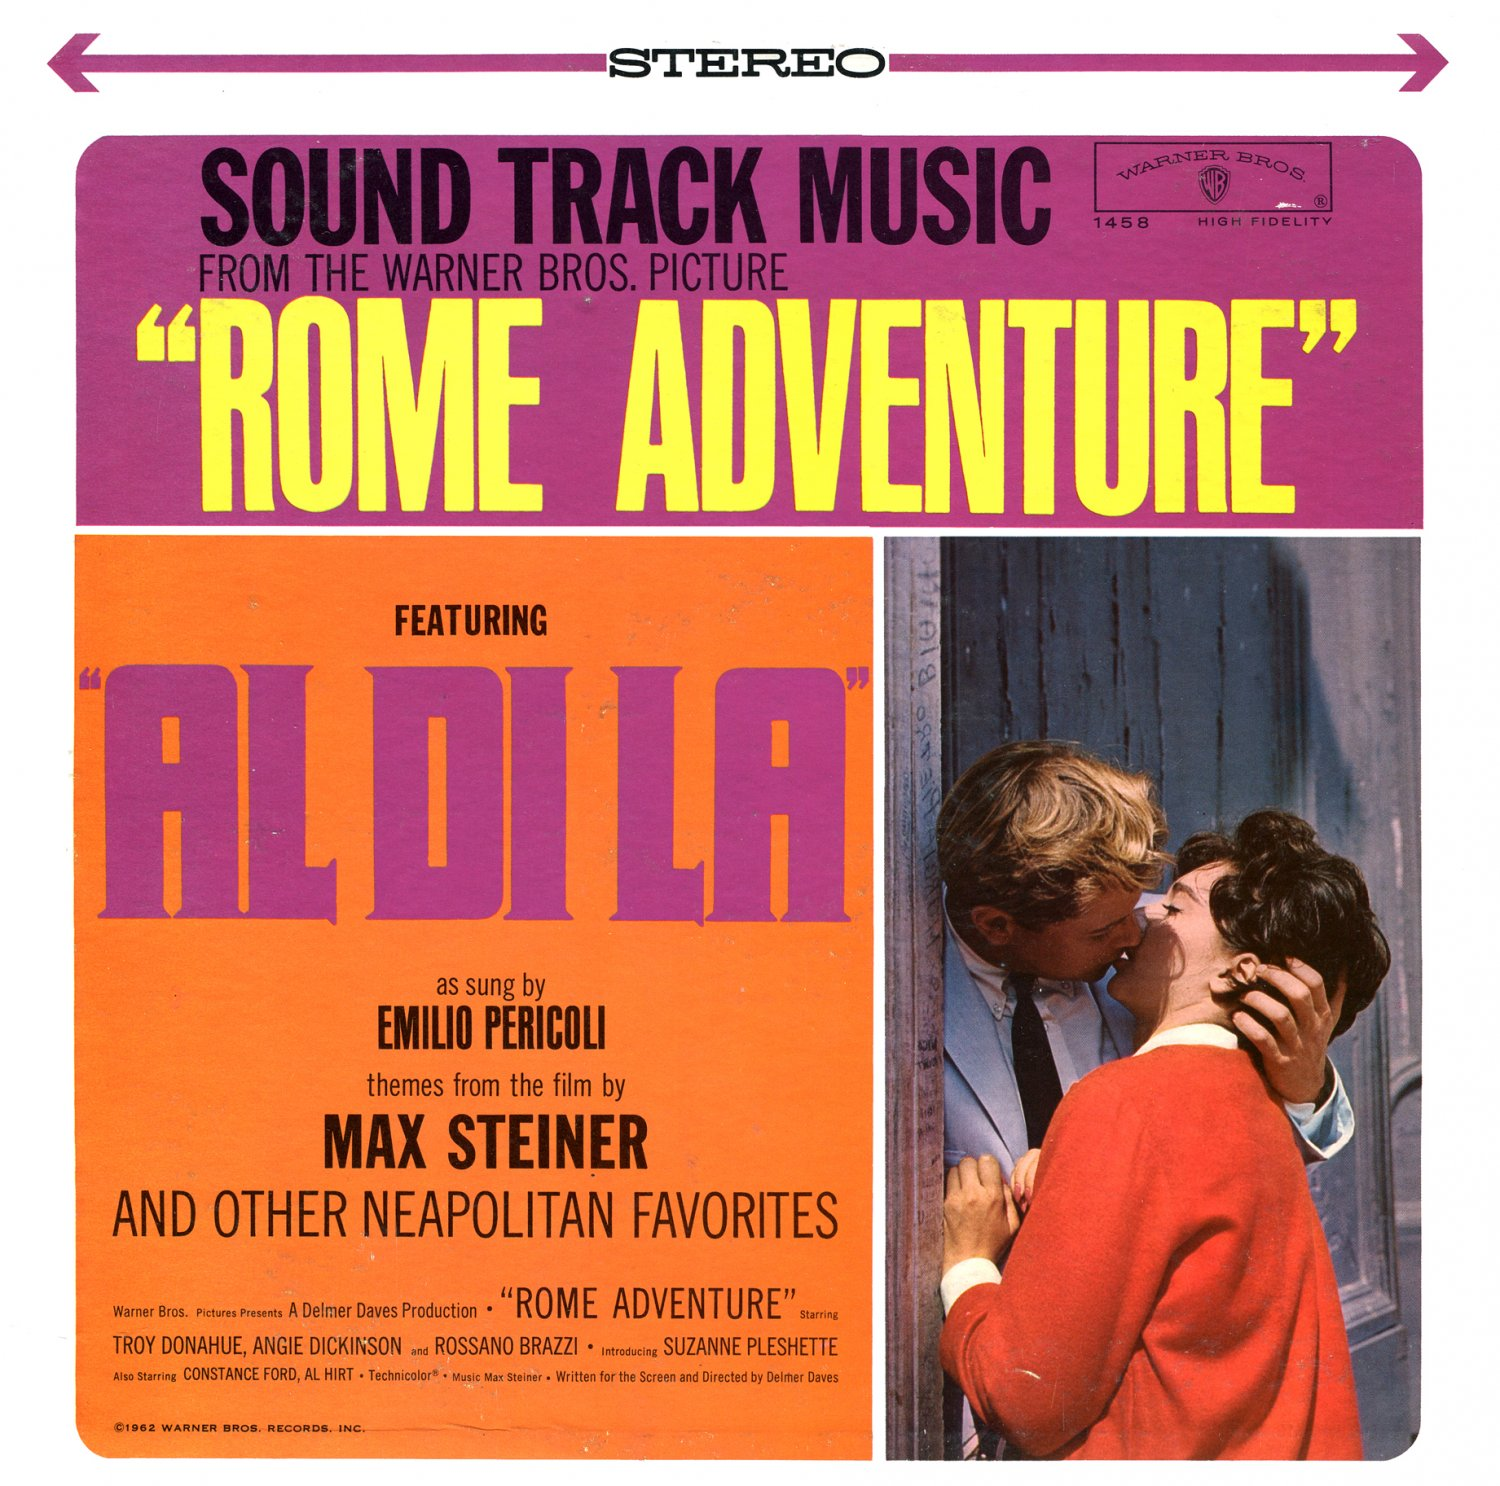 Rome Adventure - Original Soundtrack, Max Steiner OST LP/CD